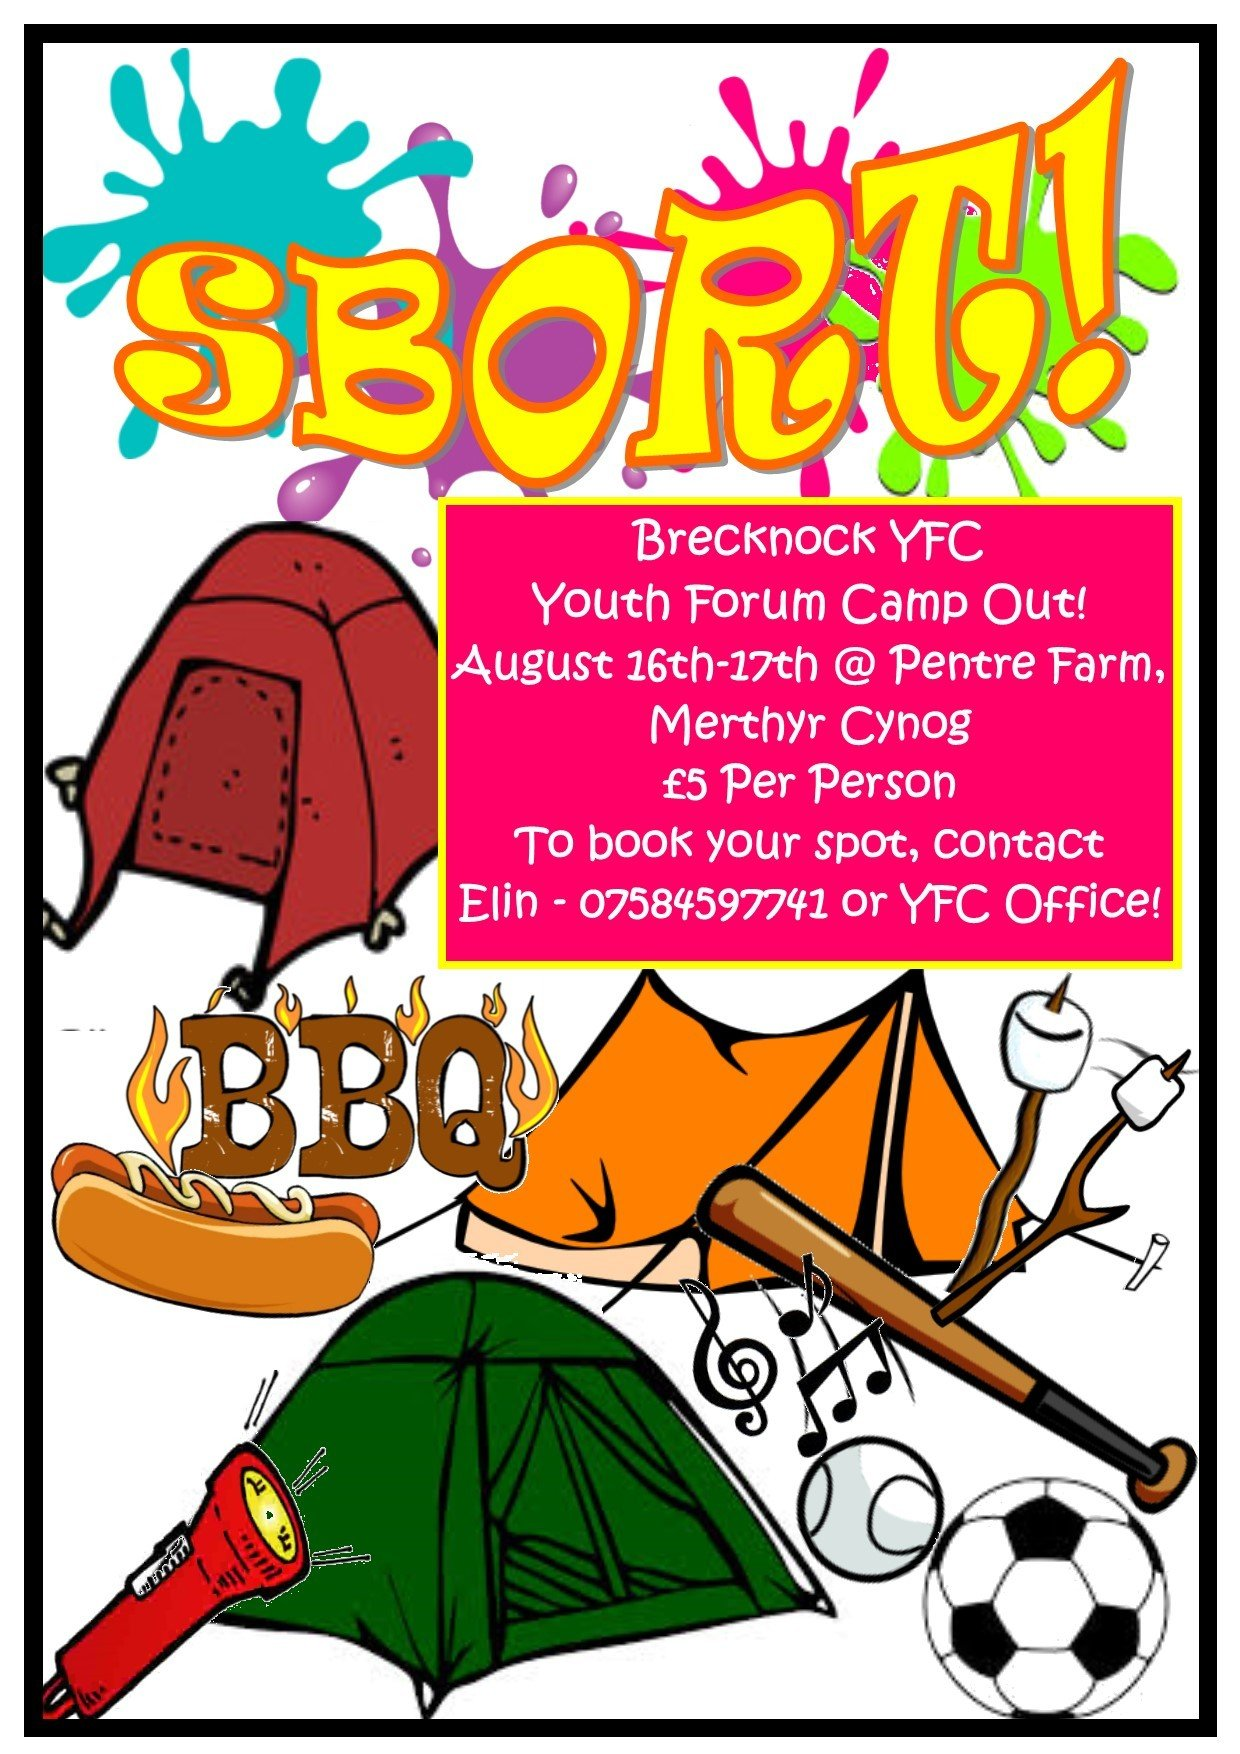 yfc_camp_out_poster.jpg